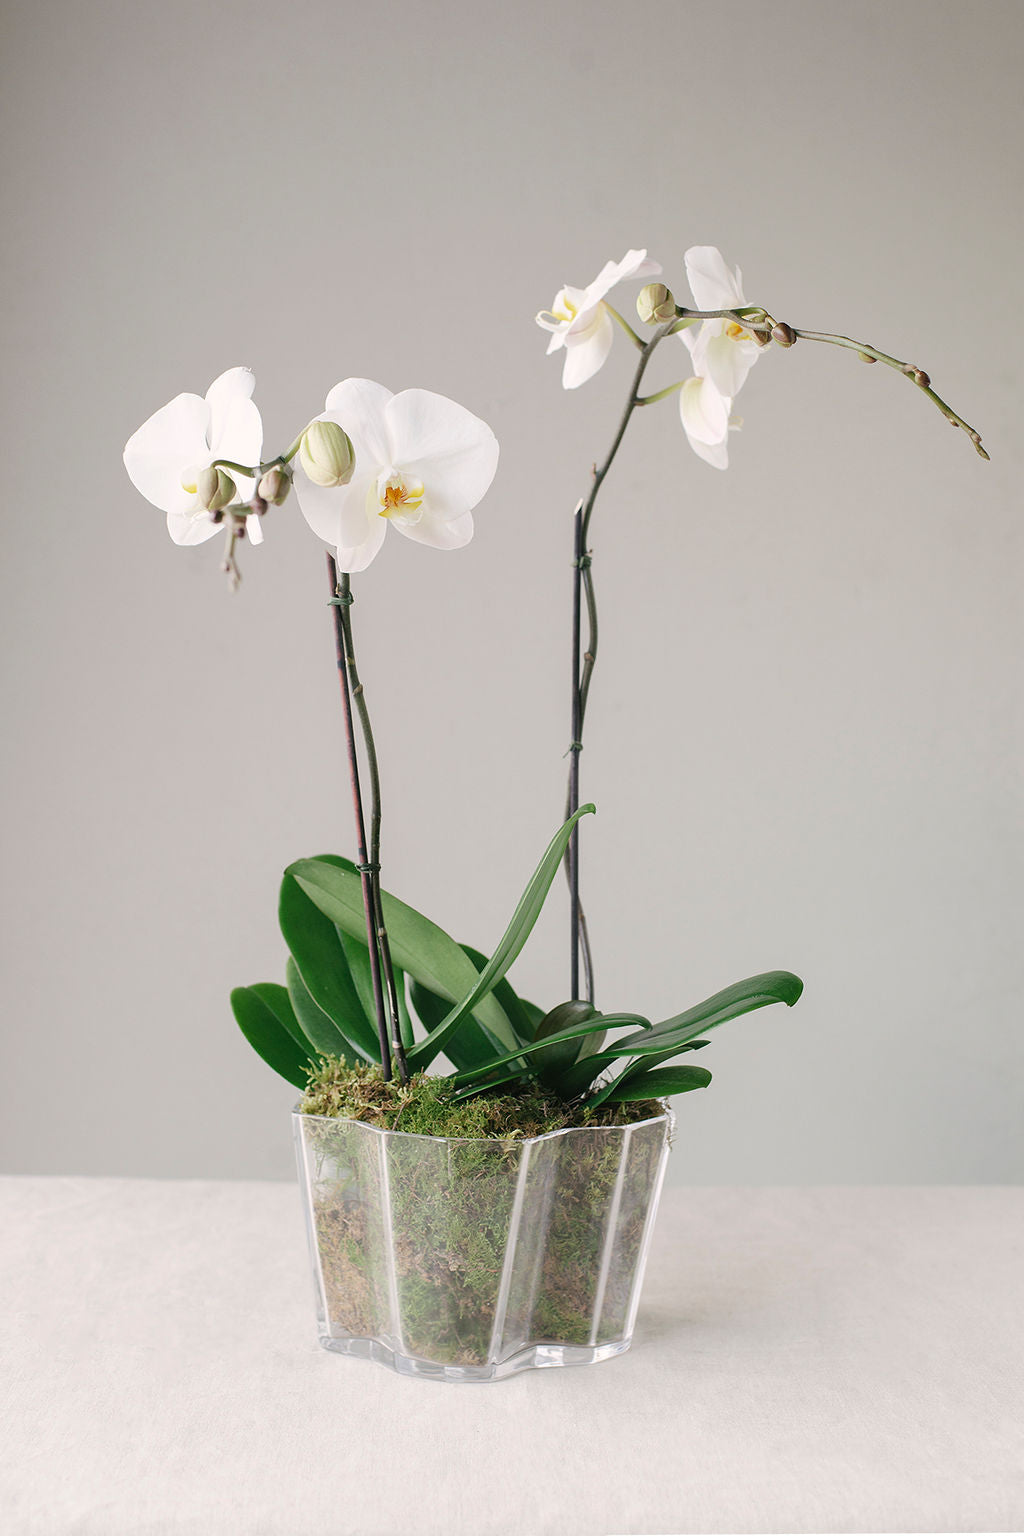 Phalaenopsis Orchids in Deco Inspired Glass Vase